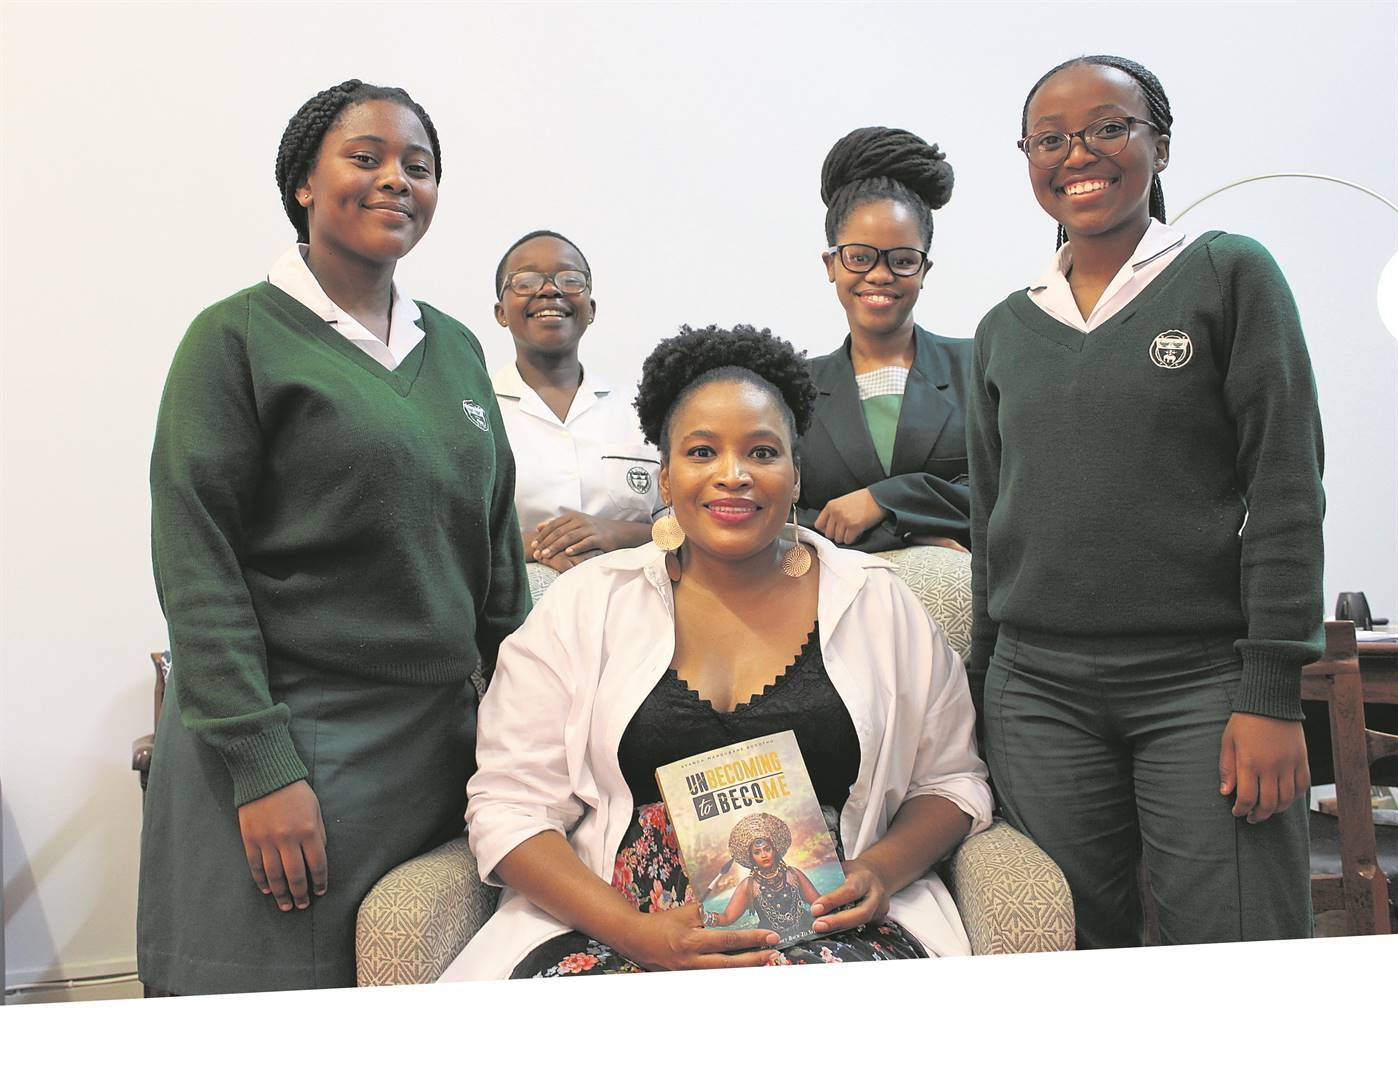 Pupils and staff at Pietermaritzburg Girls' High School were honoured to have Isibaya actress and now author, Ayanda Borotho, chat to them as part of the launch of her book, Unbecoming to Become. Borotho has a special connection to GHS principal, Andrew Graaf, who was her English teacher from Grade 9 to matric, and mentions him in the book as the person who introduced her to storytelling and the reason she fell in love with stories. The talk was inspirational, relatable and mostly enjoyed by all. With Borotho is Aphelele Ndwandwe (back, left), Asanda Goba, Nozipho Kubone (front, left) and Karabelo Lefefa.PHOTO: SUPPLIED